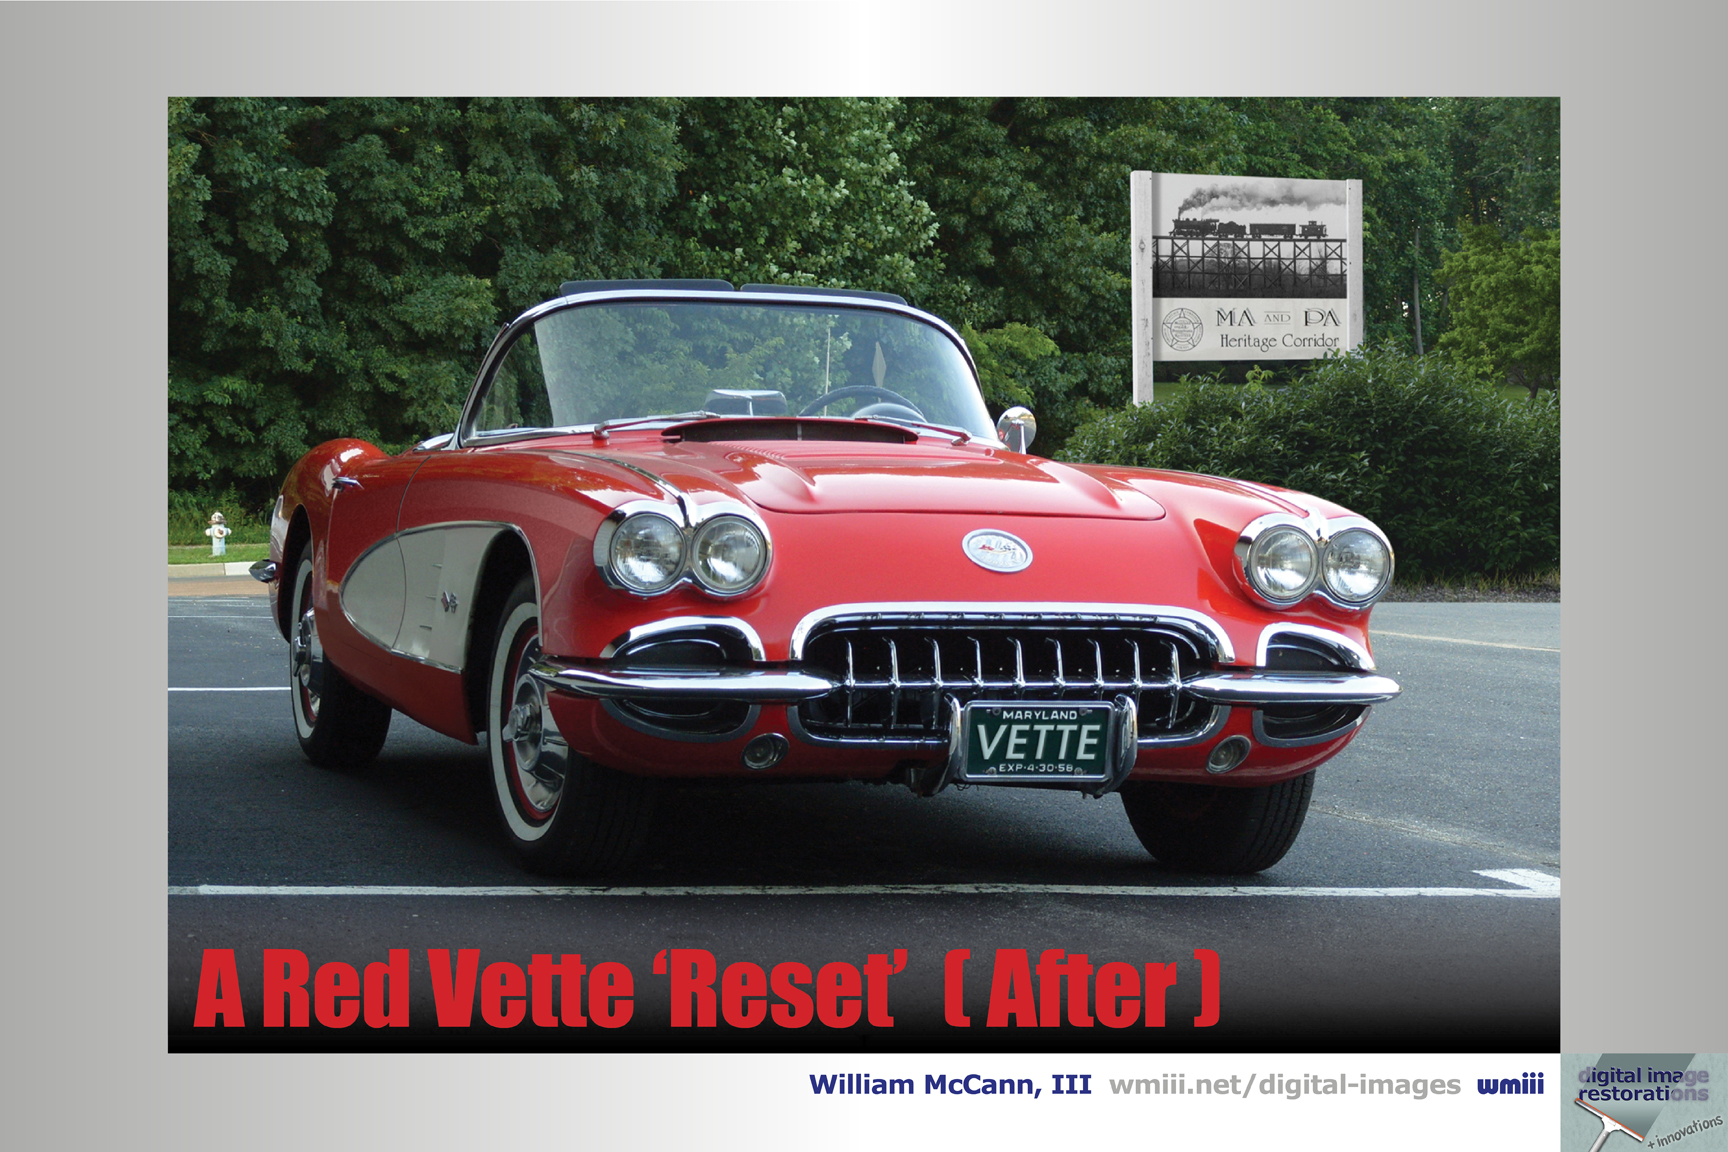 A Red Vette 'Reset' (After)